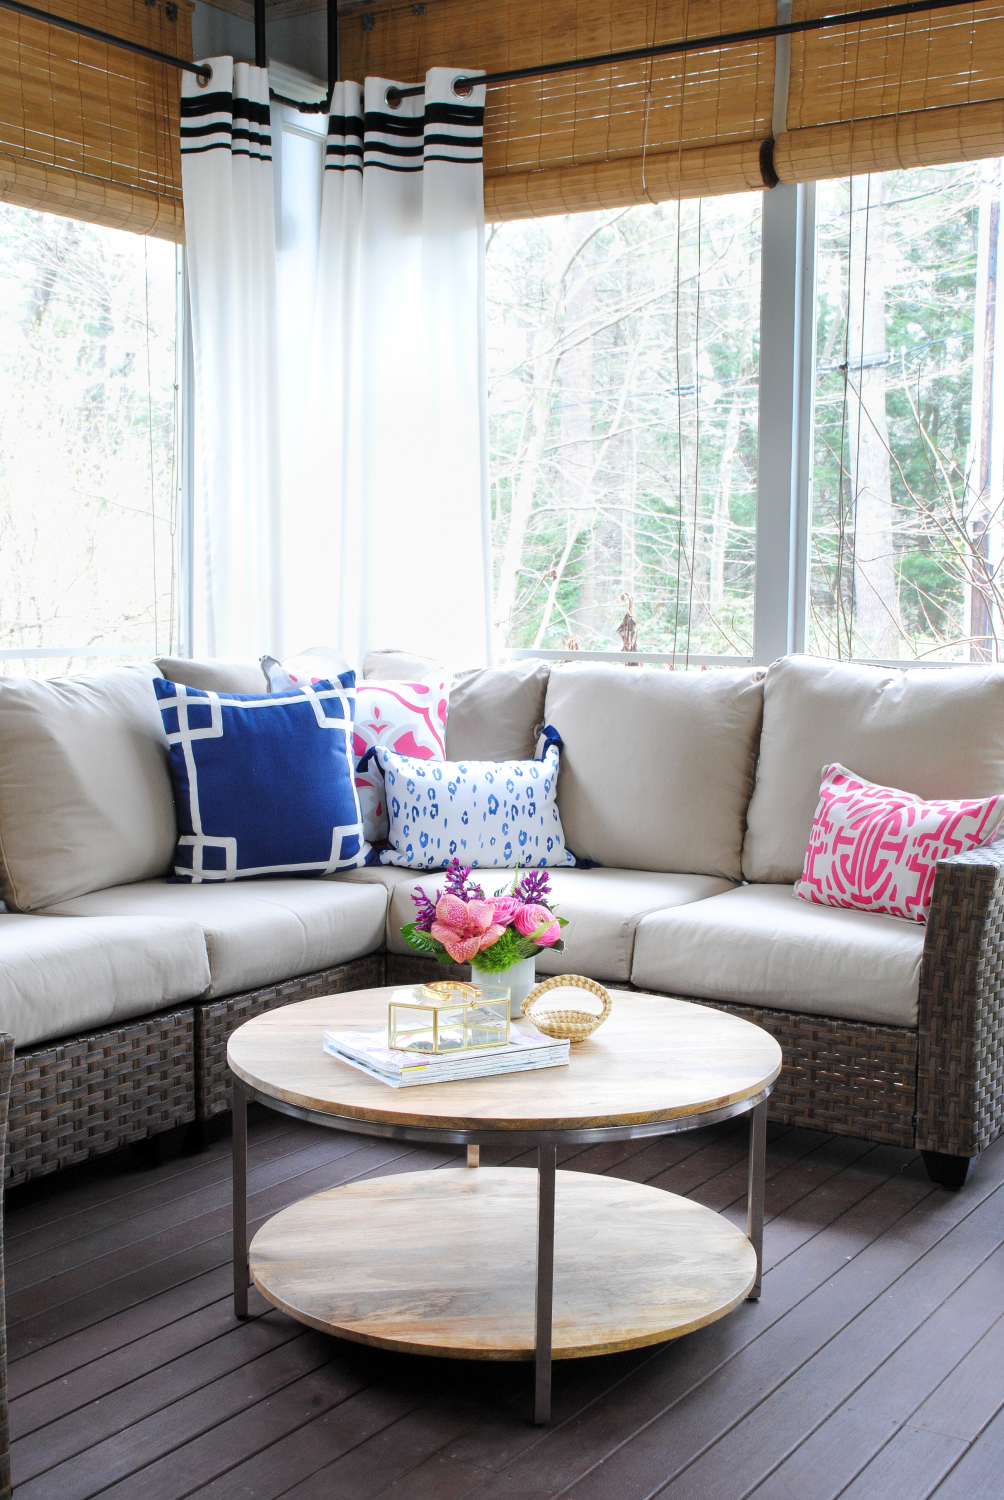 Nice Screened porch with woven wicker round coffee table navy blue and pink accents